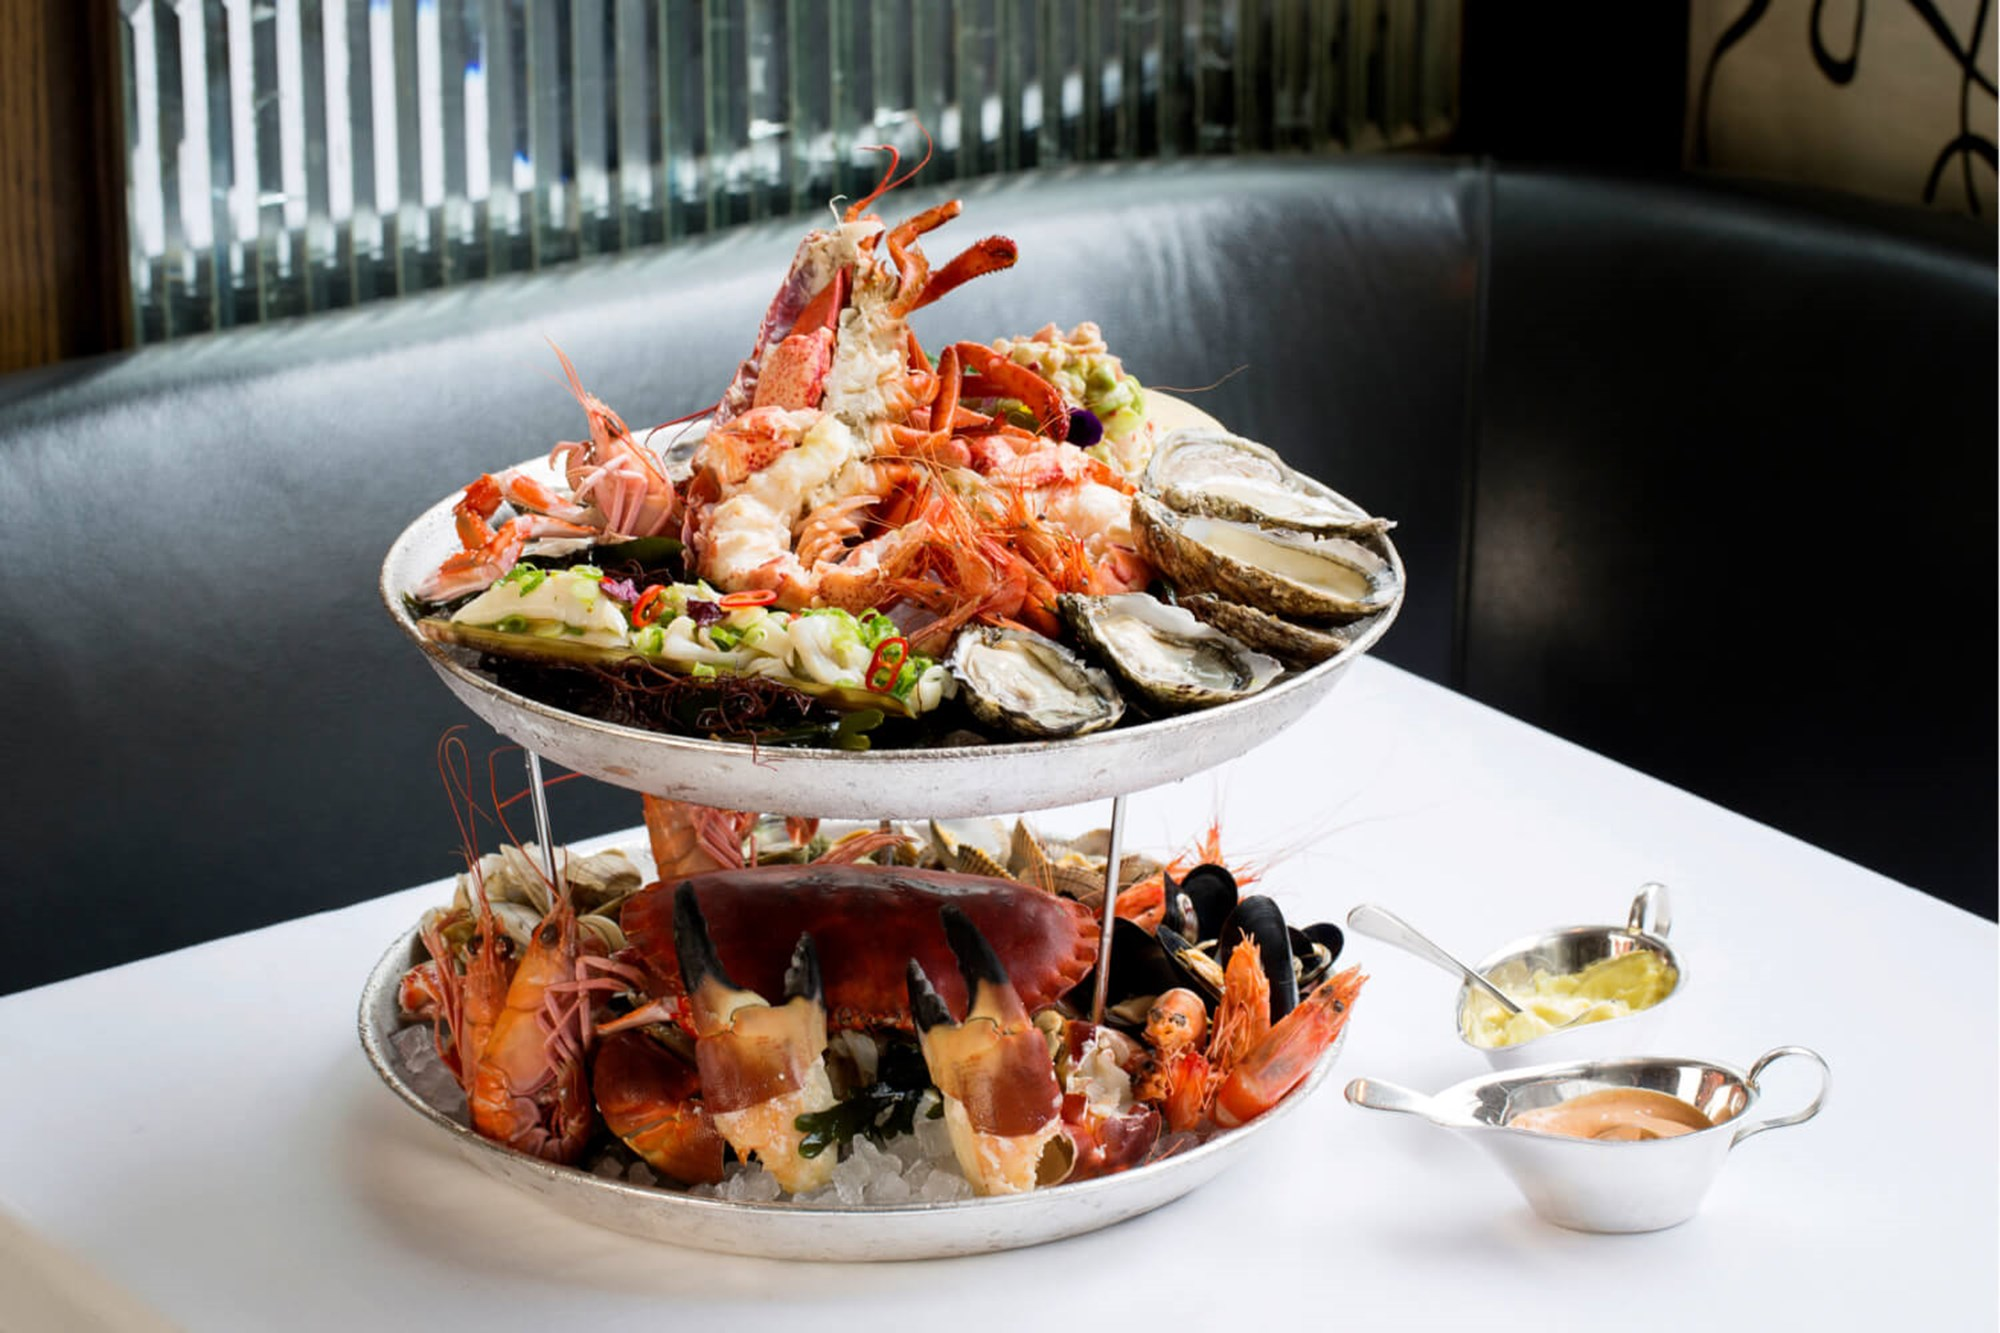 Seafood platter at Scott's, London's finest fish and seafood restaurant